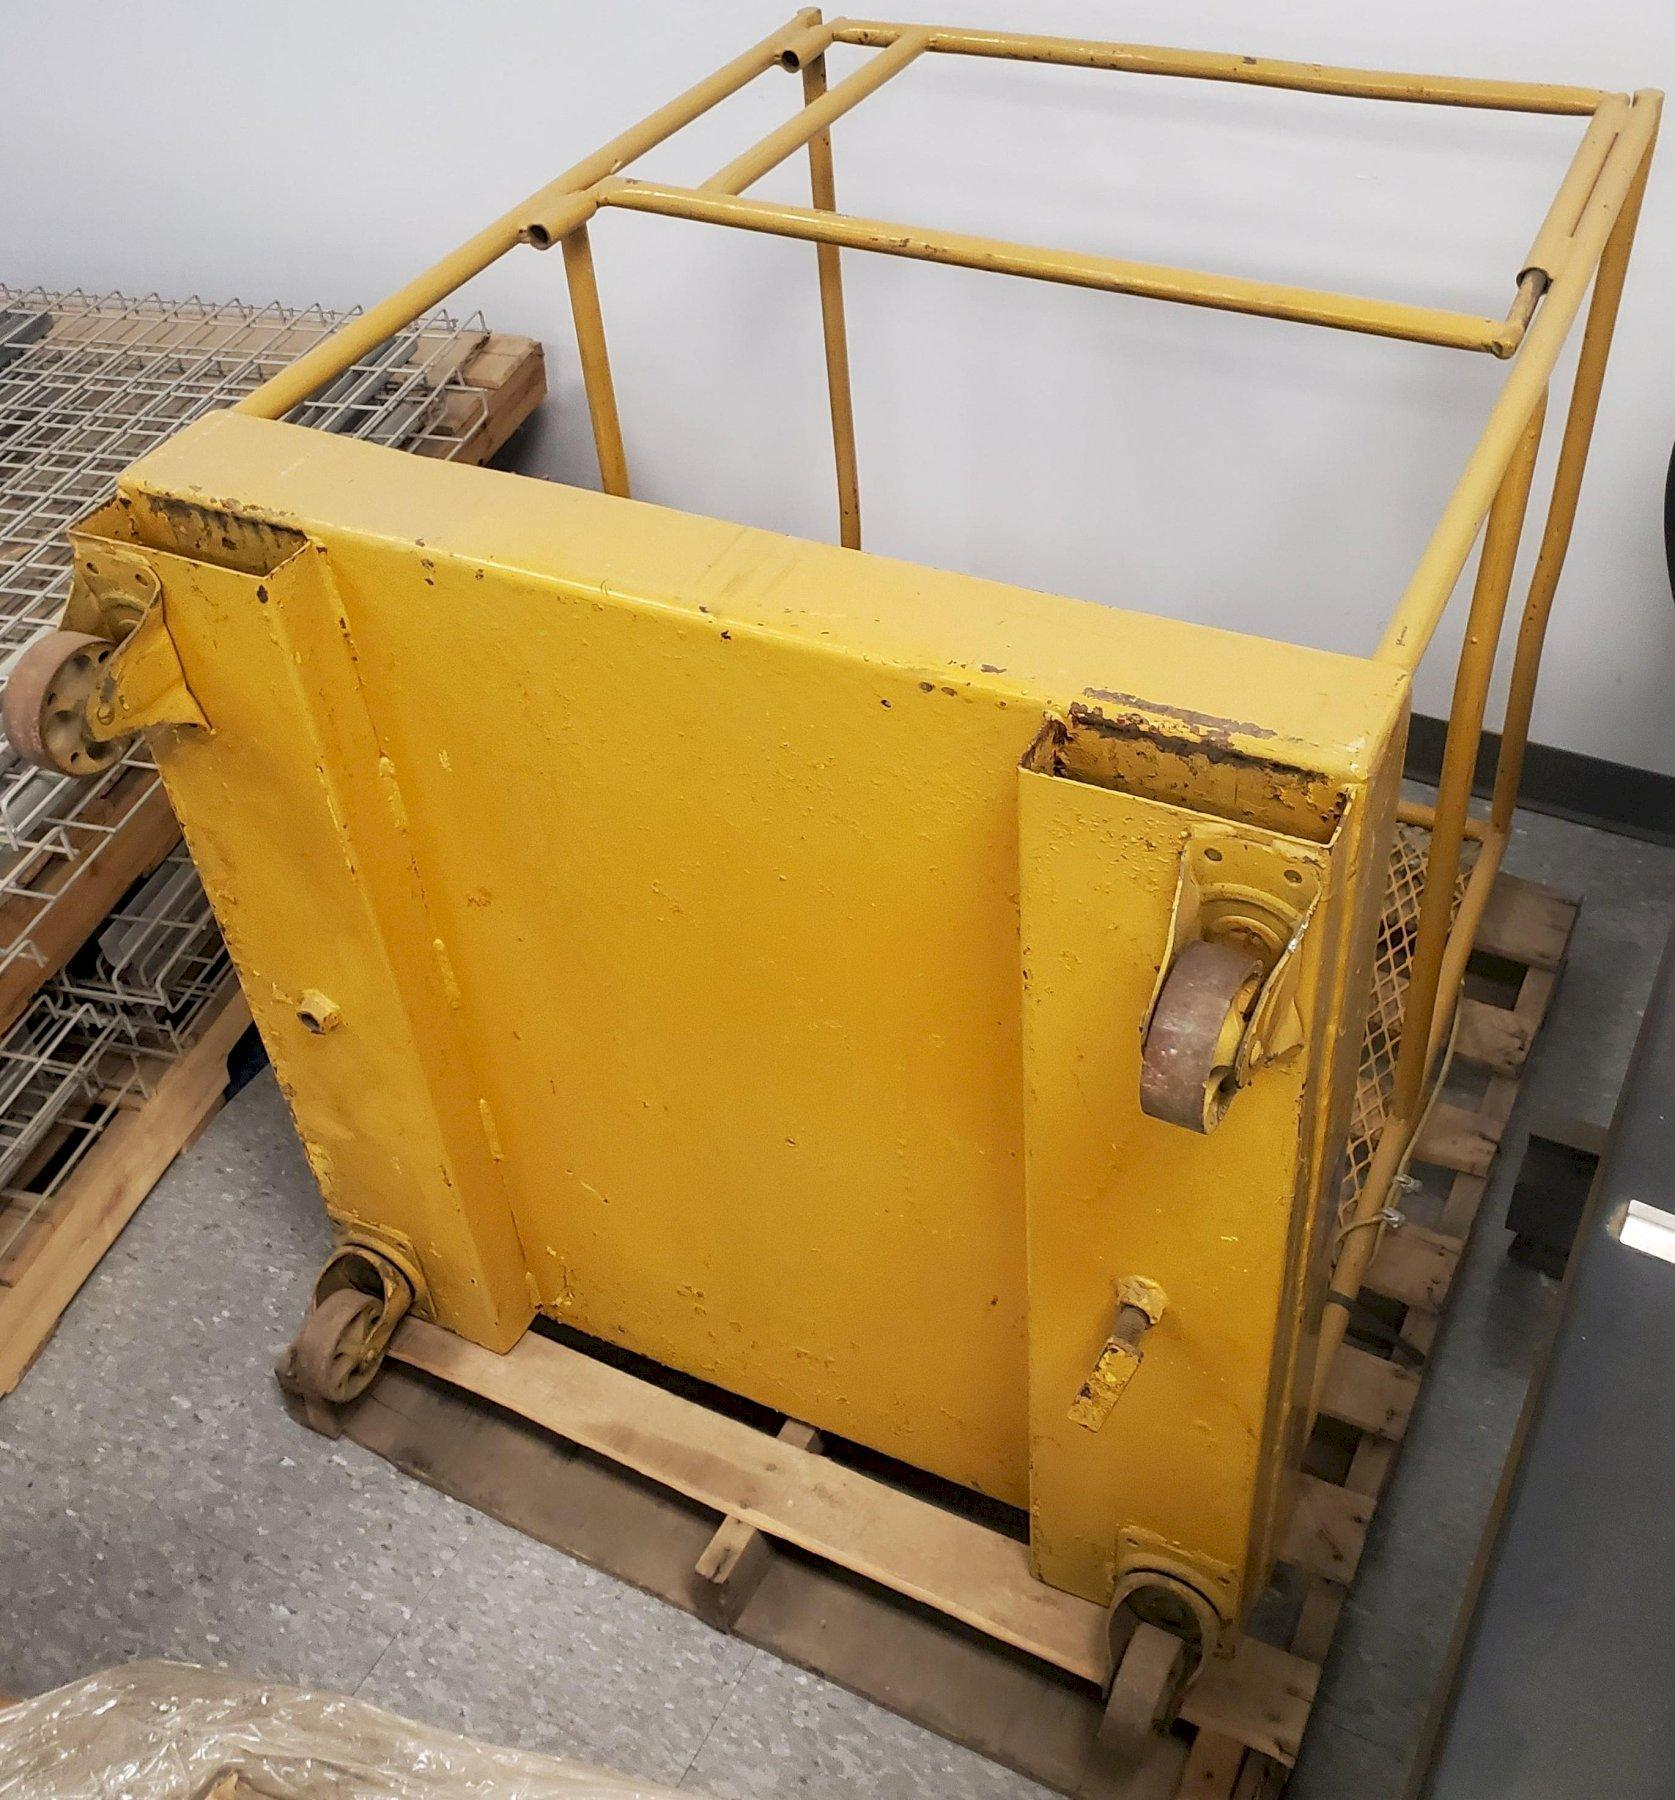 MAN CAGE FOR FORKLIFT STOCK # 2786